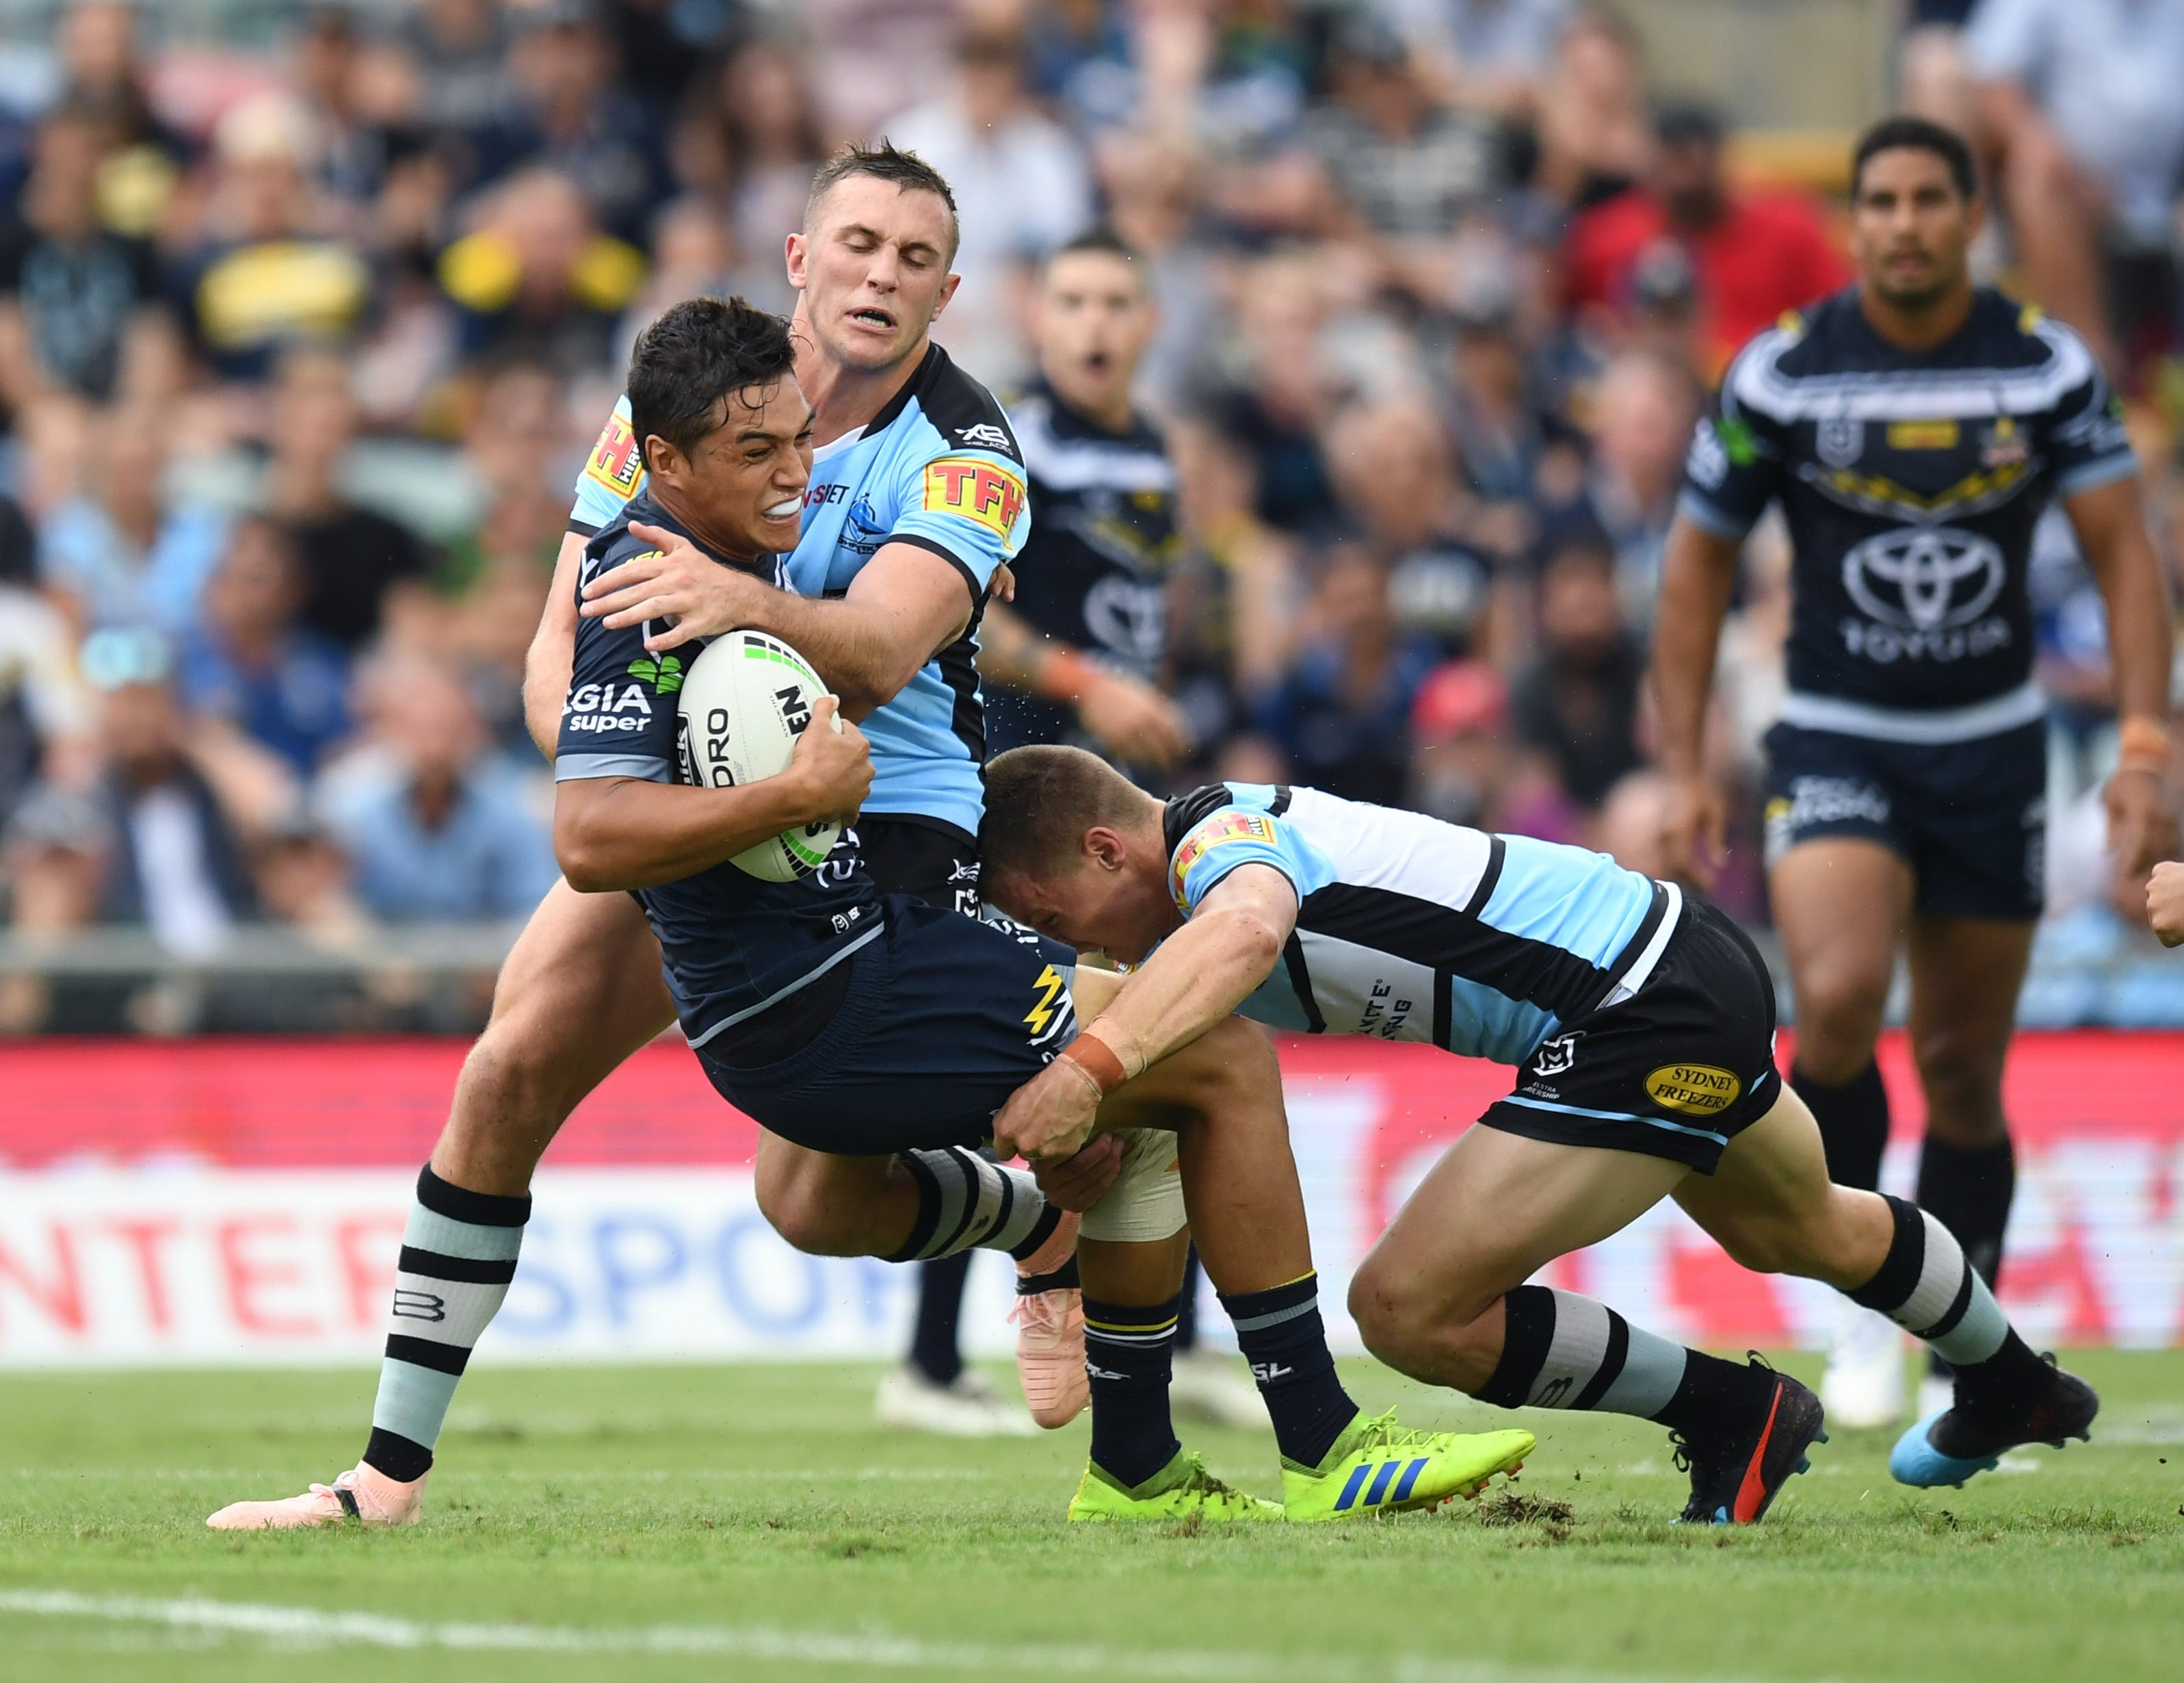 North Queensland Toyota Cowboys versus Cronulla Sharks - Foster Accommodation